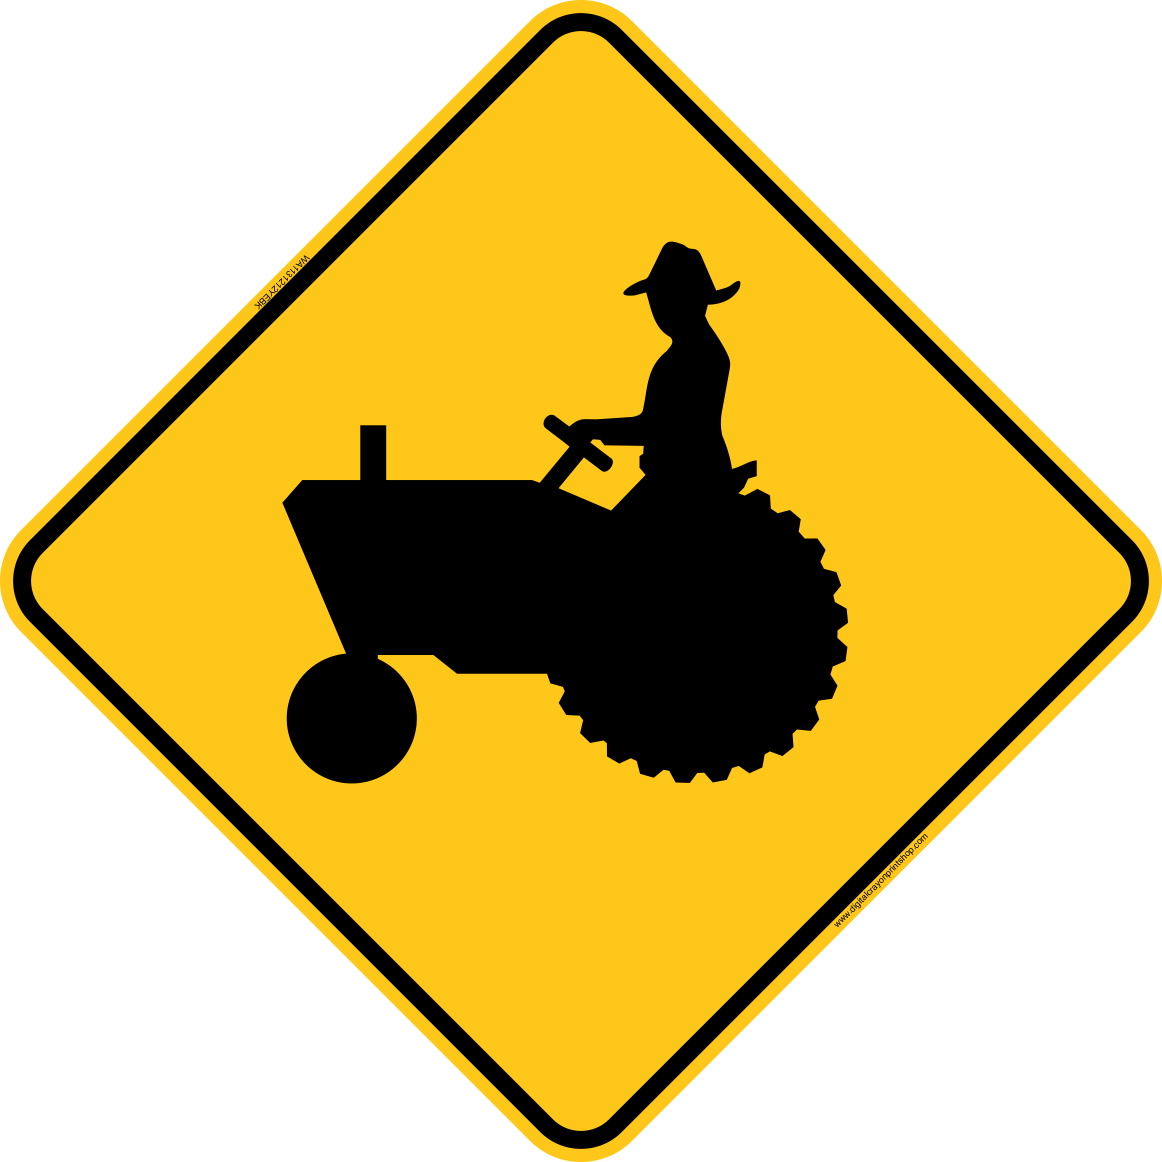 Railroad Crossing Sign Clipart | Free download on ClipArtMag (1162 x 1162 Pixel)